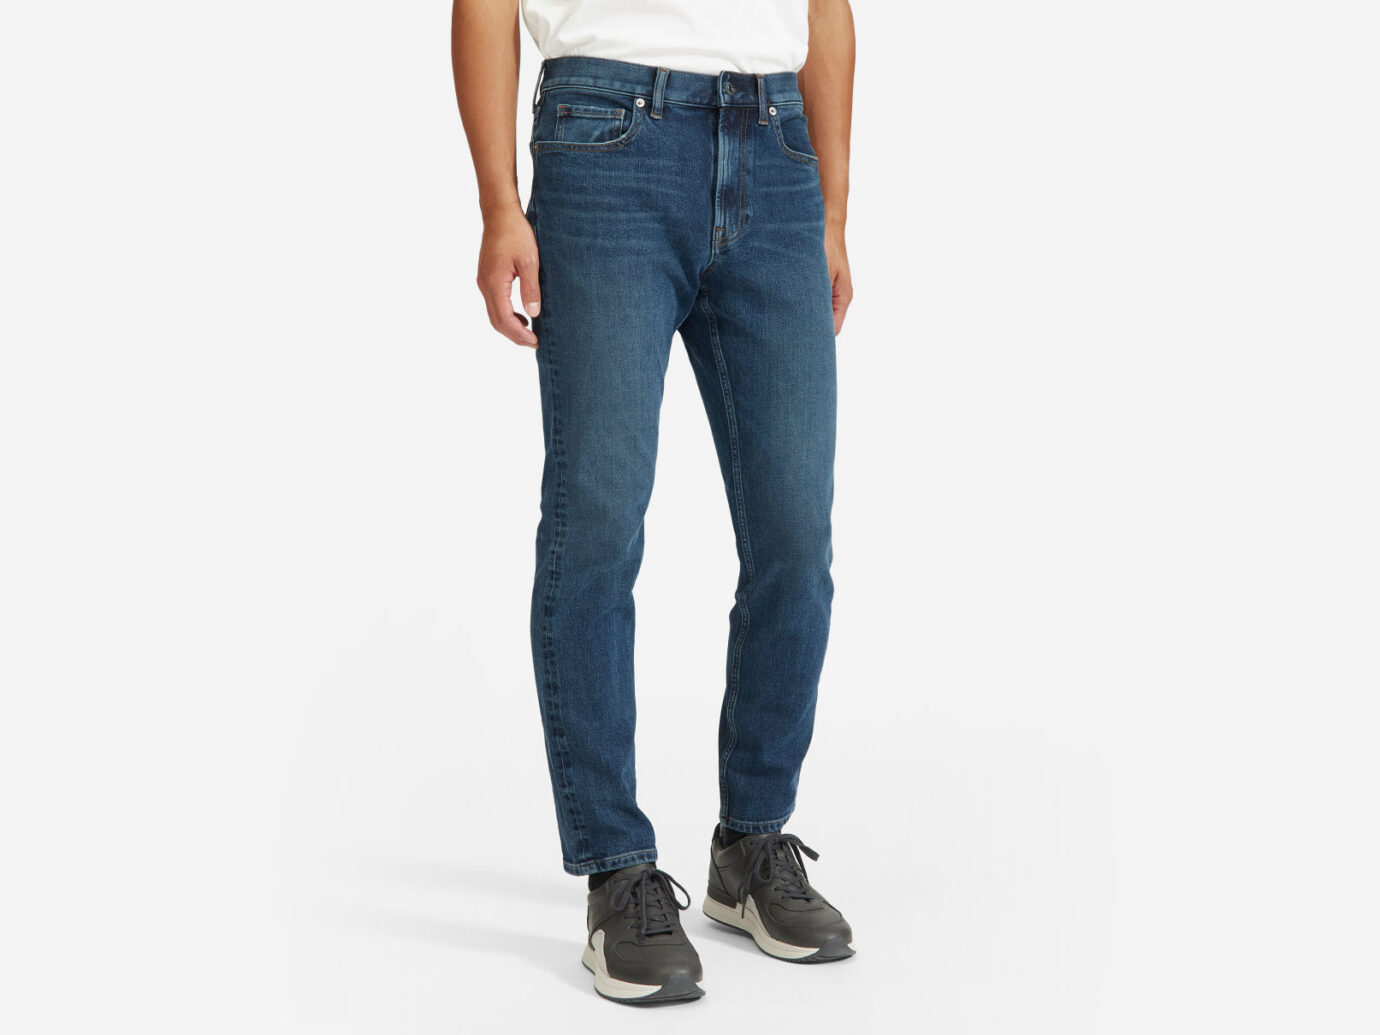 Everlane The Uniform Performance Jean